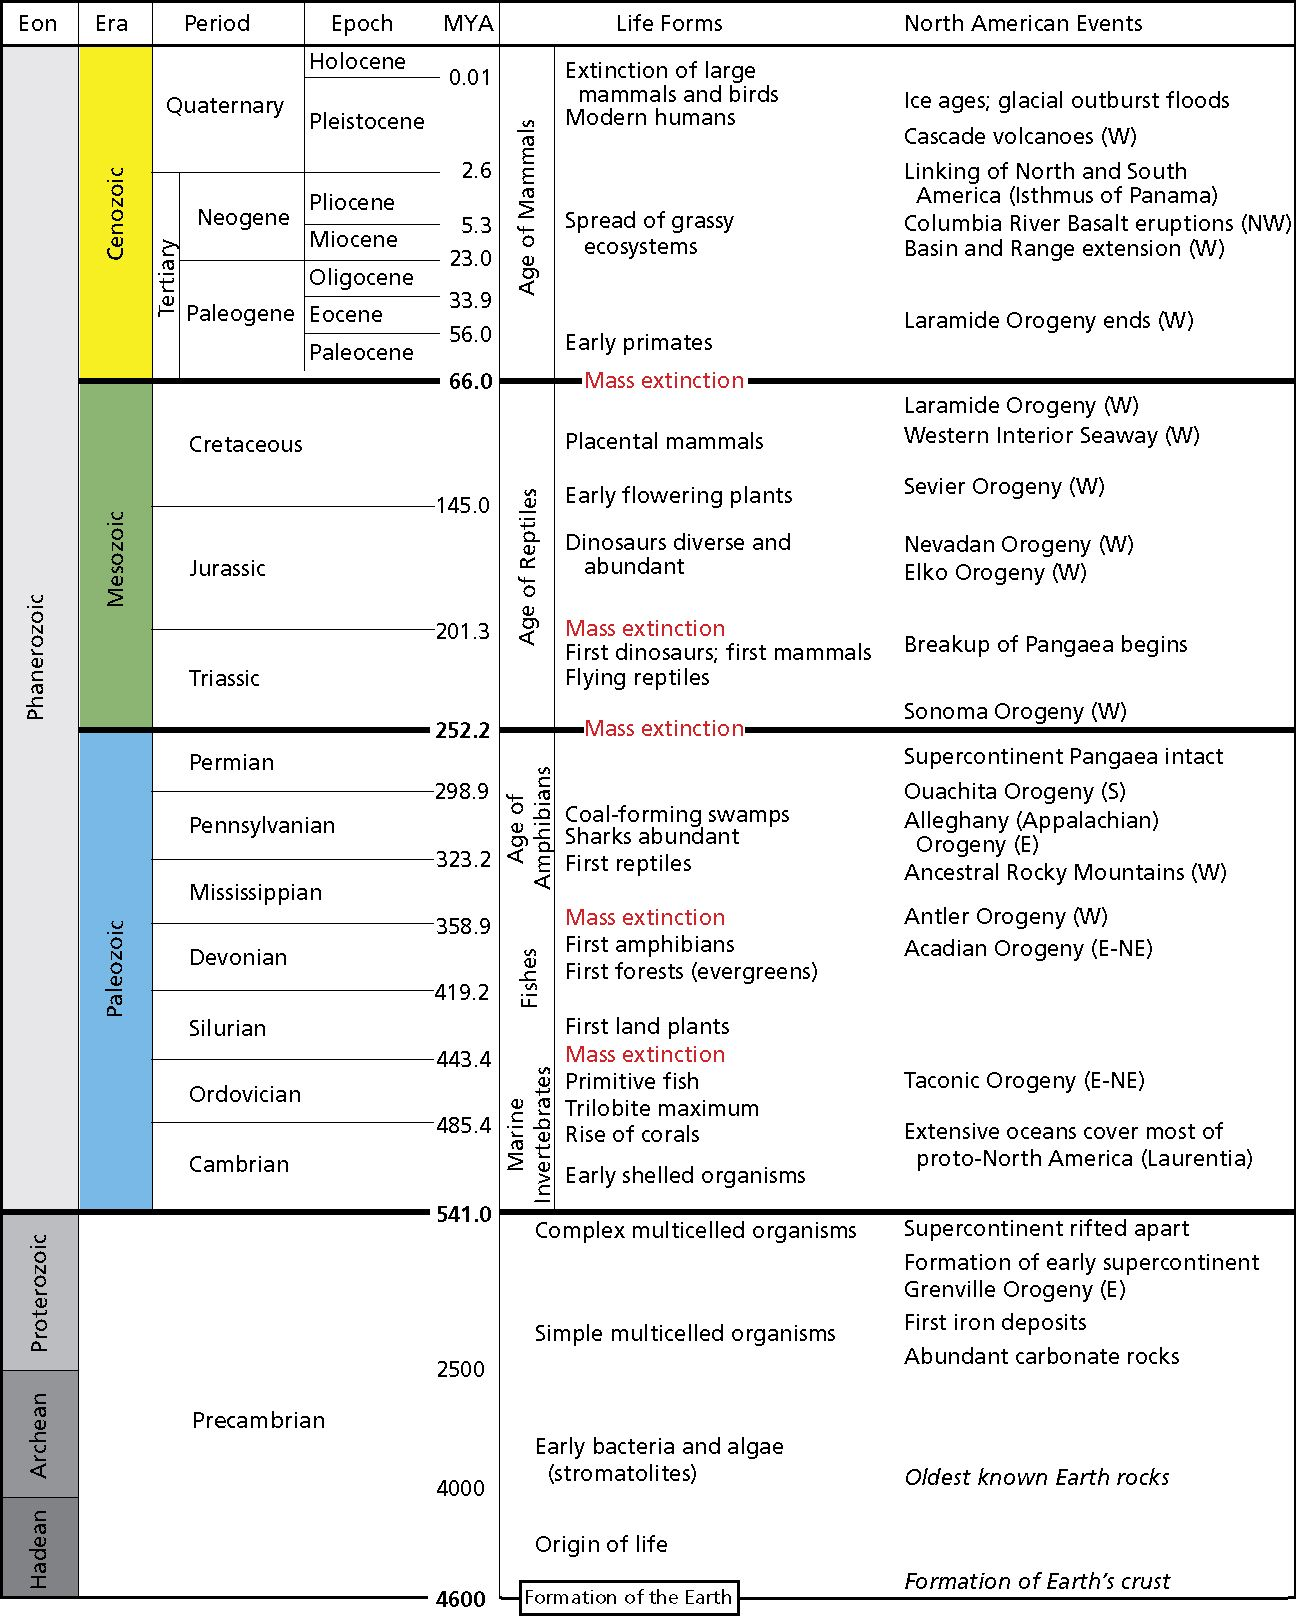 geological time scale Geologic time scale: divisions of geologic time approved by the us geological survey geologic names committee, 2010 the chart shows major chronostratigraphic and geochronologic units it reflects ratified unit names and boundary estimates from the international commission on stratigraphy (ogg, 2009.